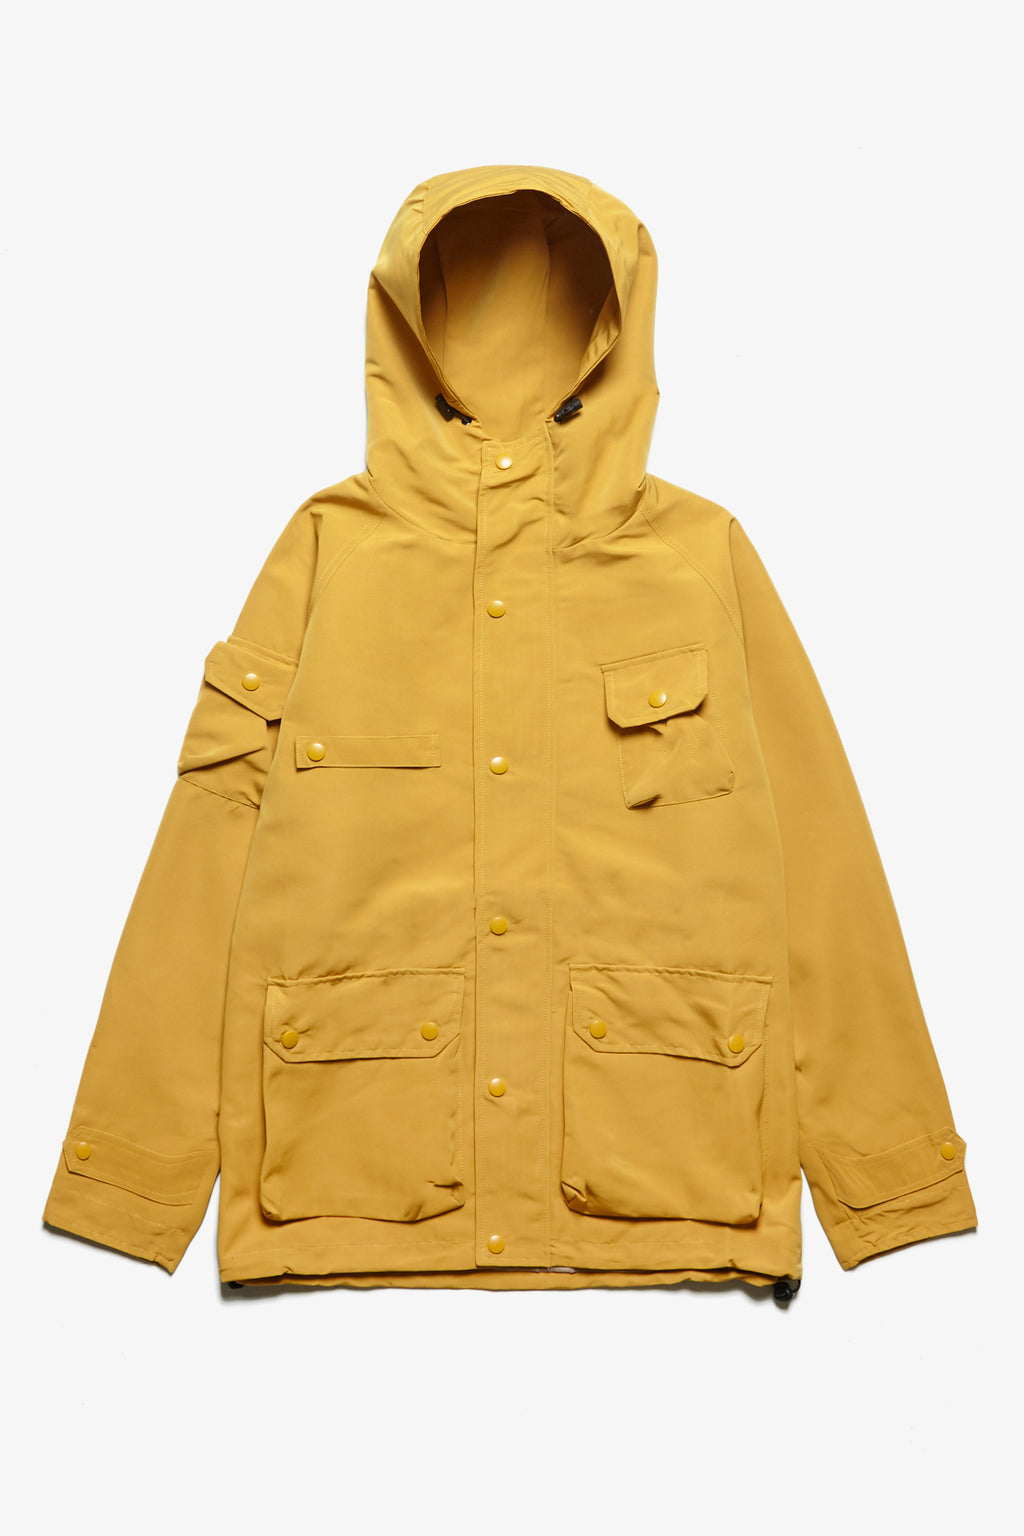 Blacksmith - Tactical Mountain Parka - Dijon